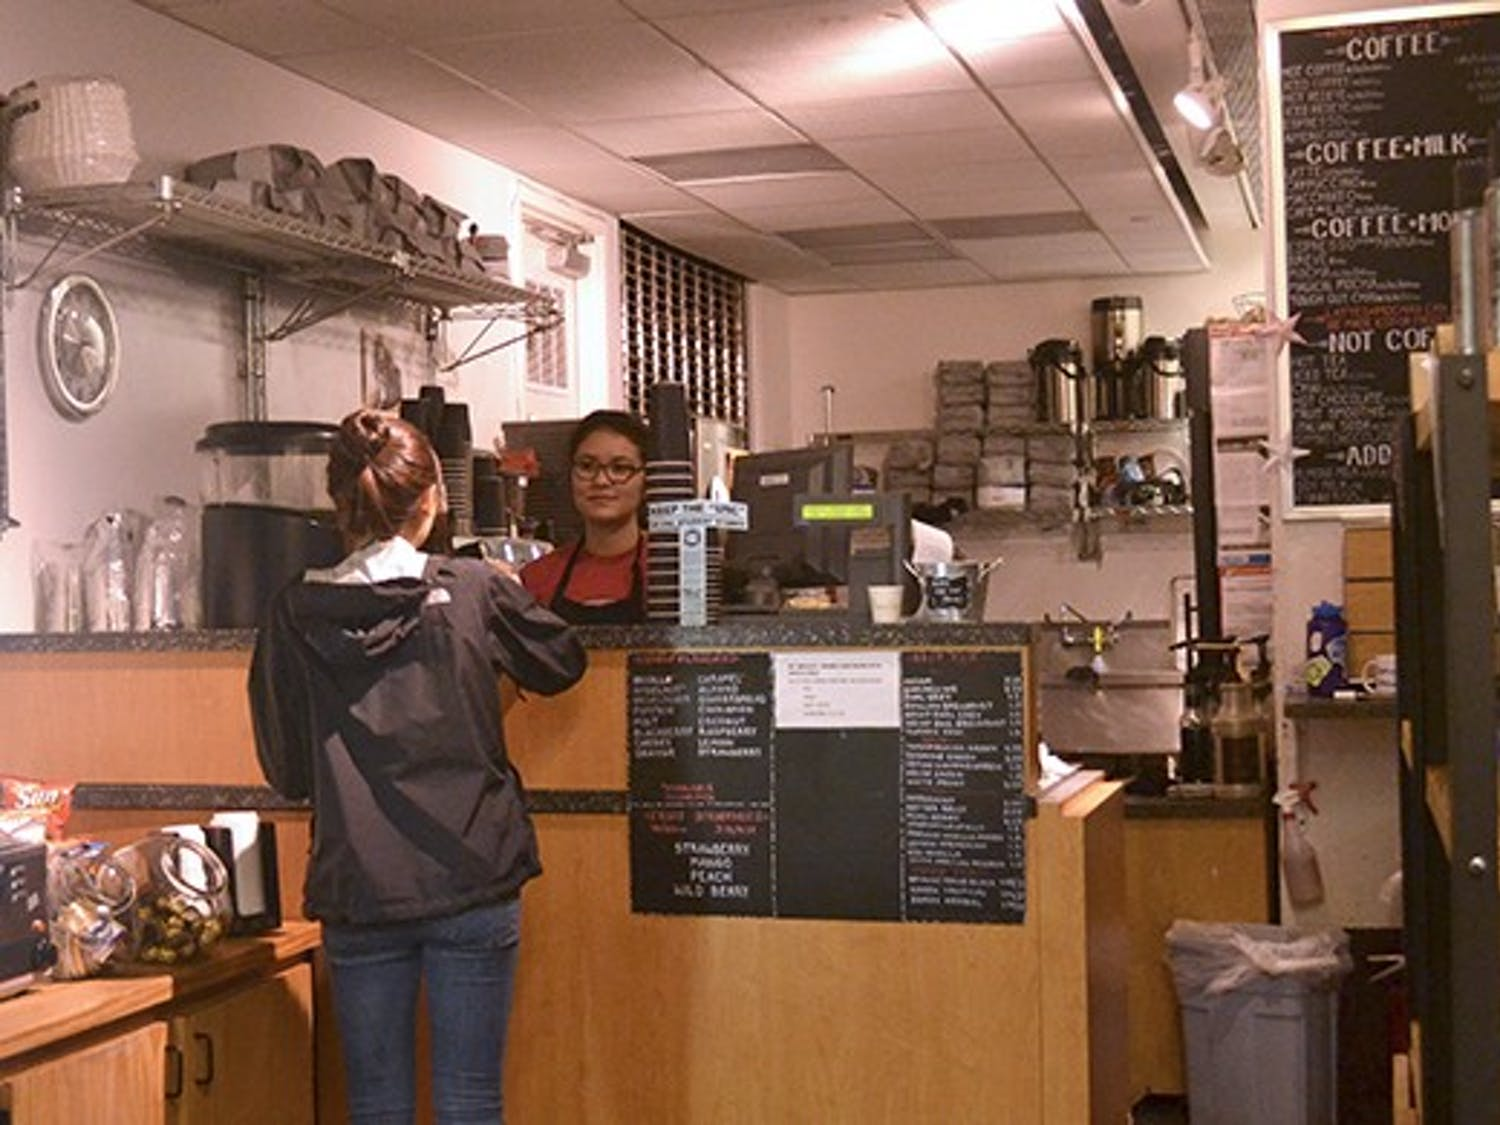 Stephanie Kim, a sophomore student, buys coffee from barista Mariko Davison at the Daily Grind located in the student store.